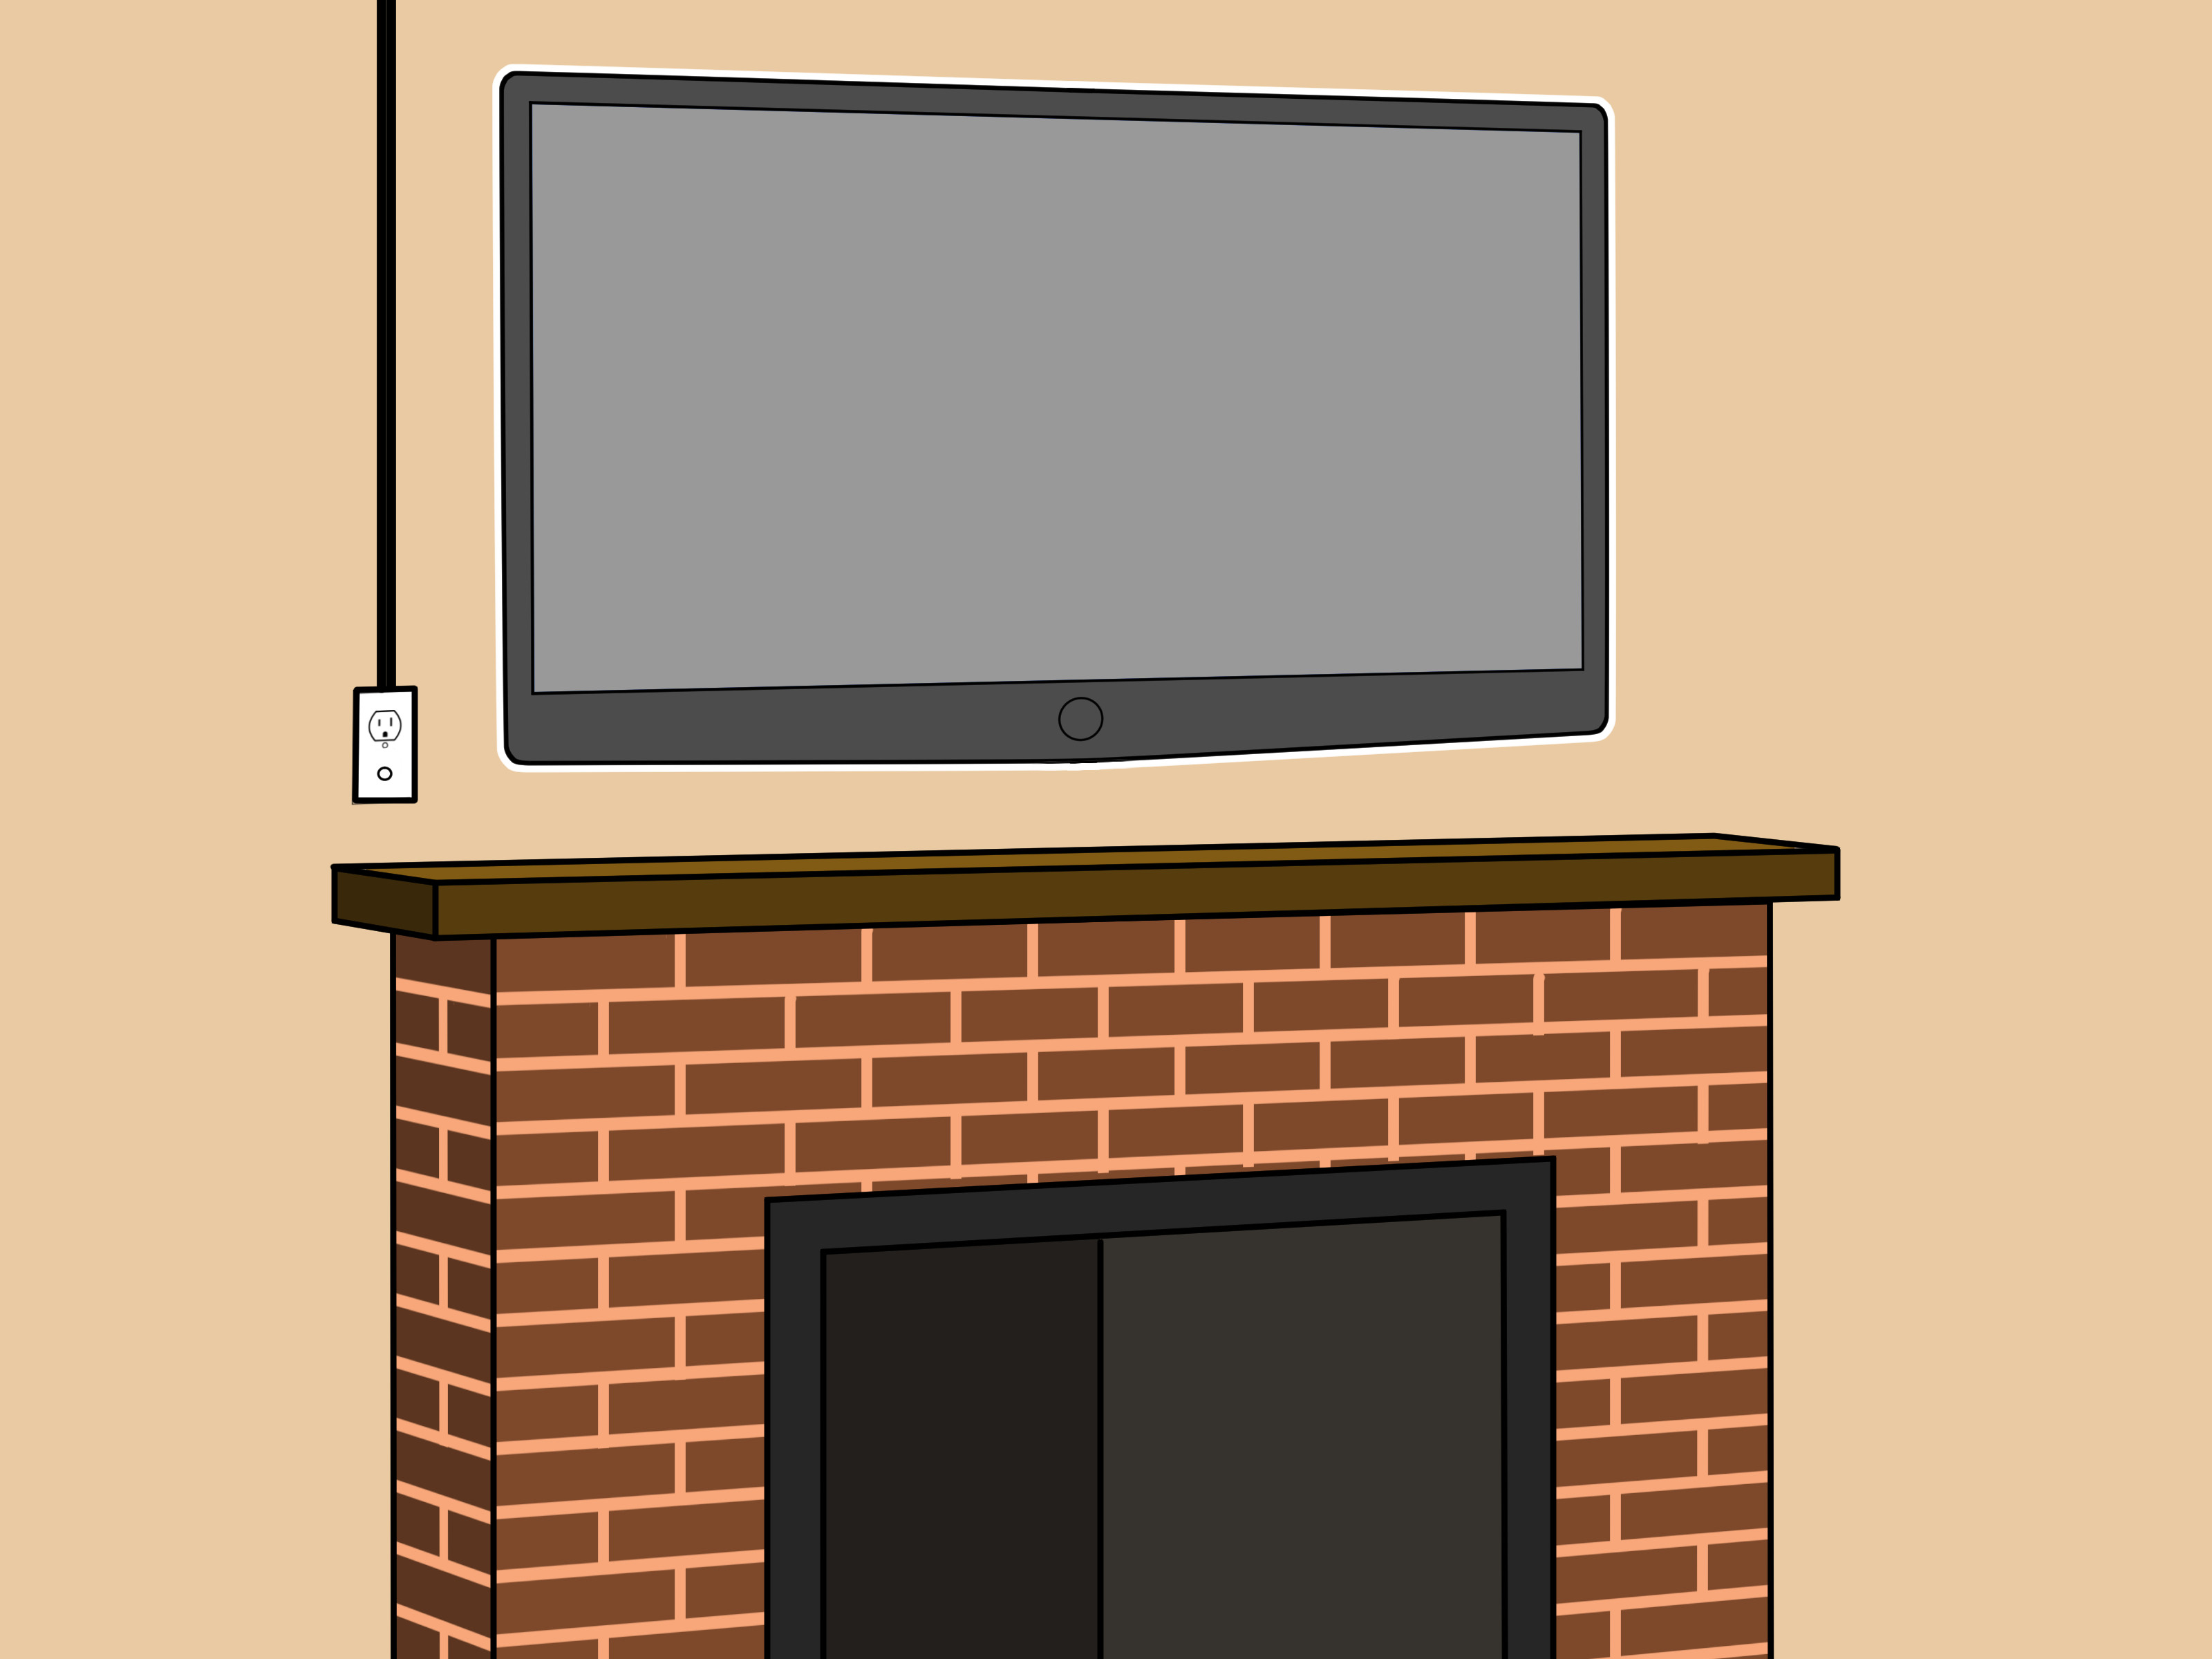 Best ideas about Mounting Tv Above Fireplace . Save or Pin How to Mount a Fireplace TV Bracket 7 Steps with Now.